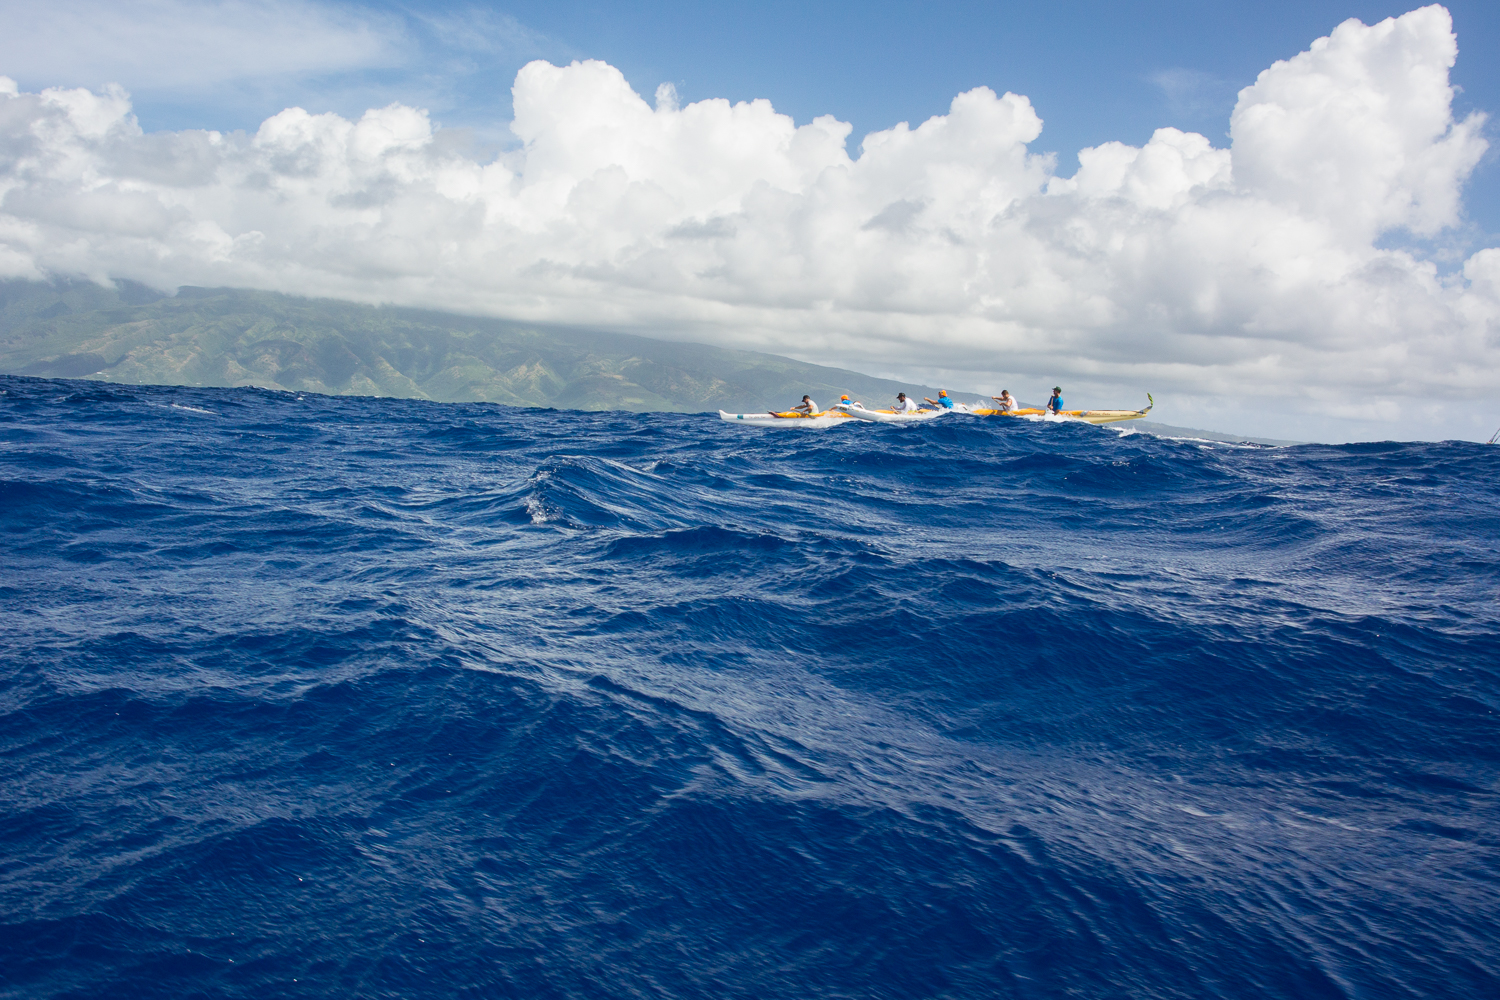 outrigger-canoe-image-pueo-creations-professional-photogrpahy-maui.jpg